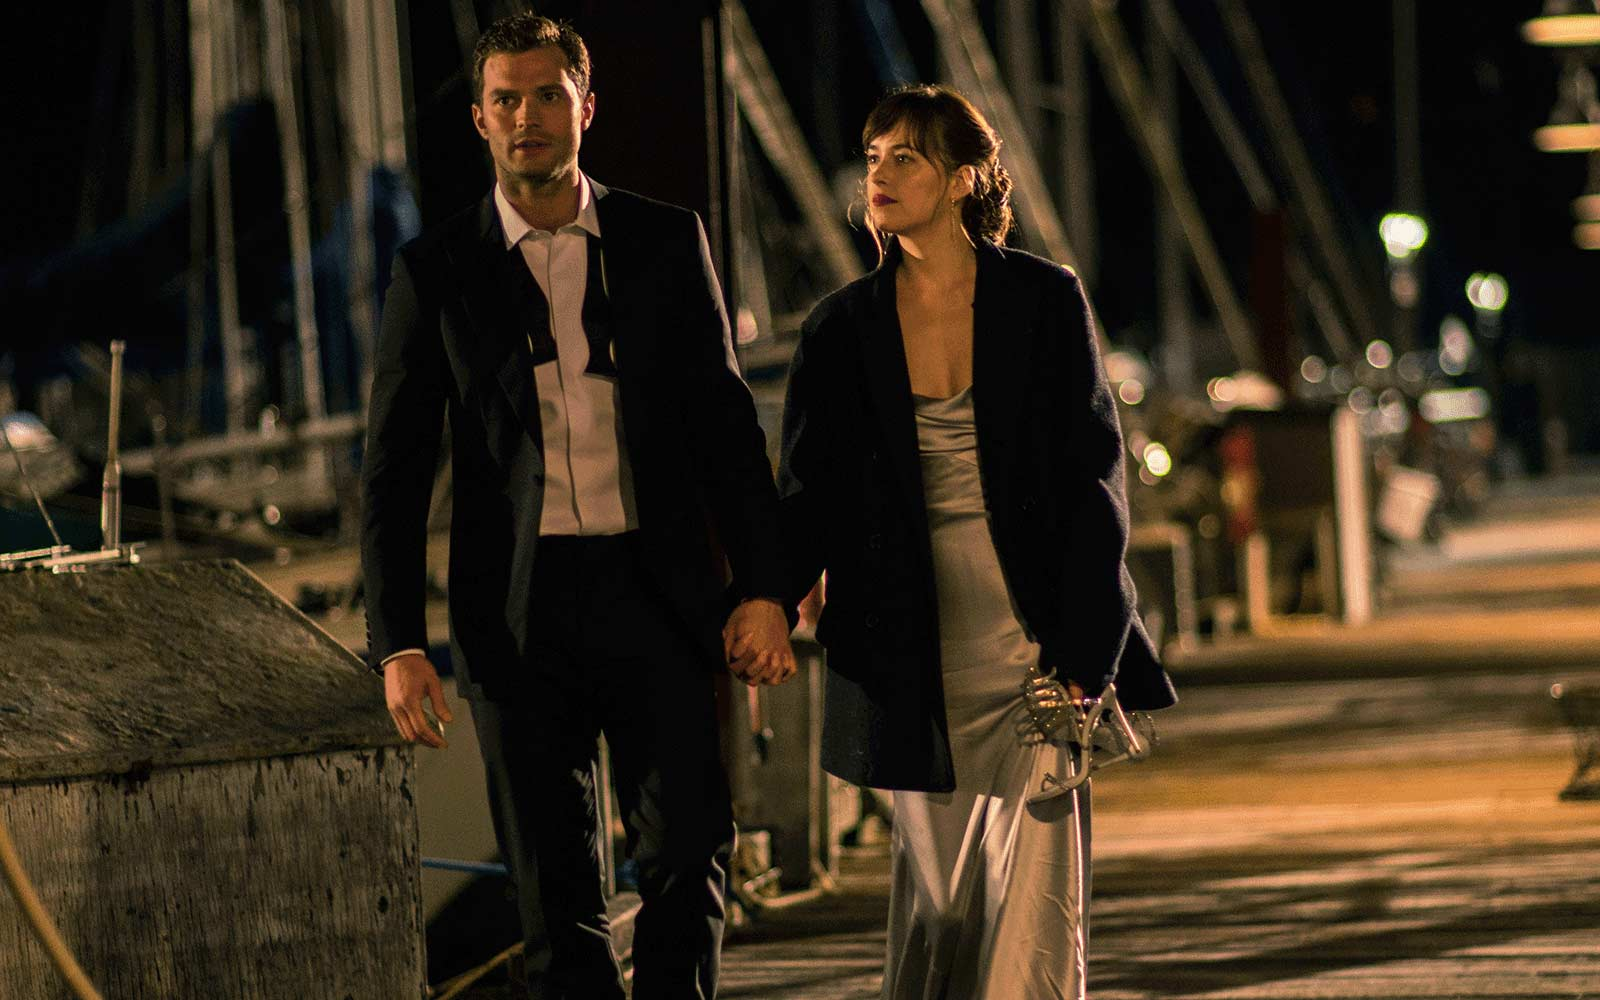 How to Visit the Locations in 'Fifty Shades Darker'